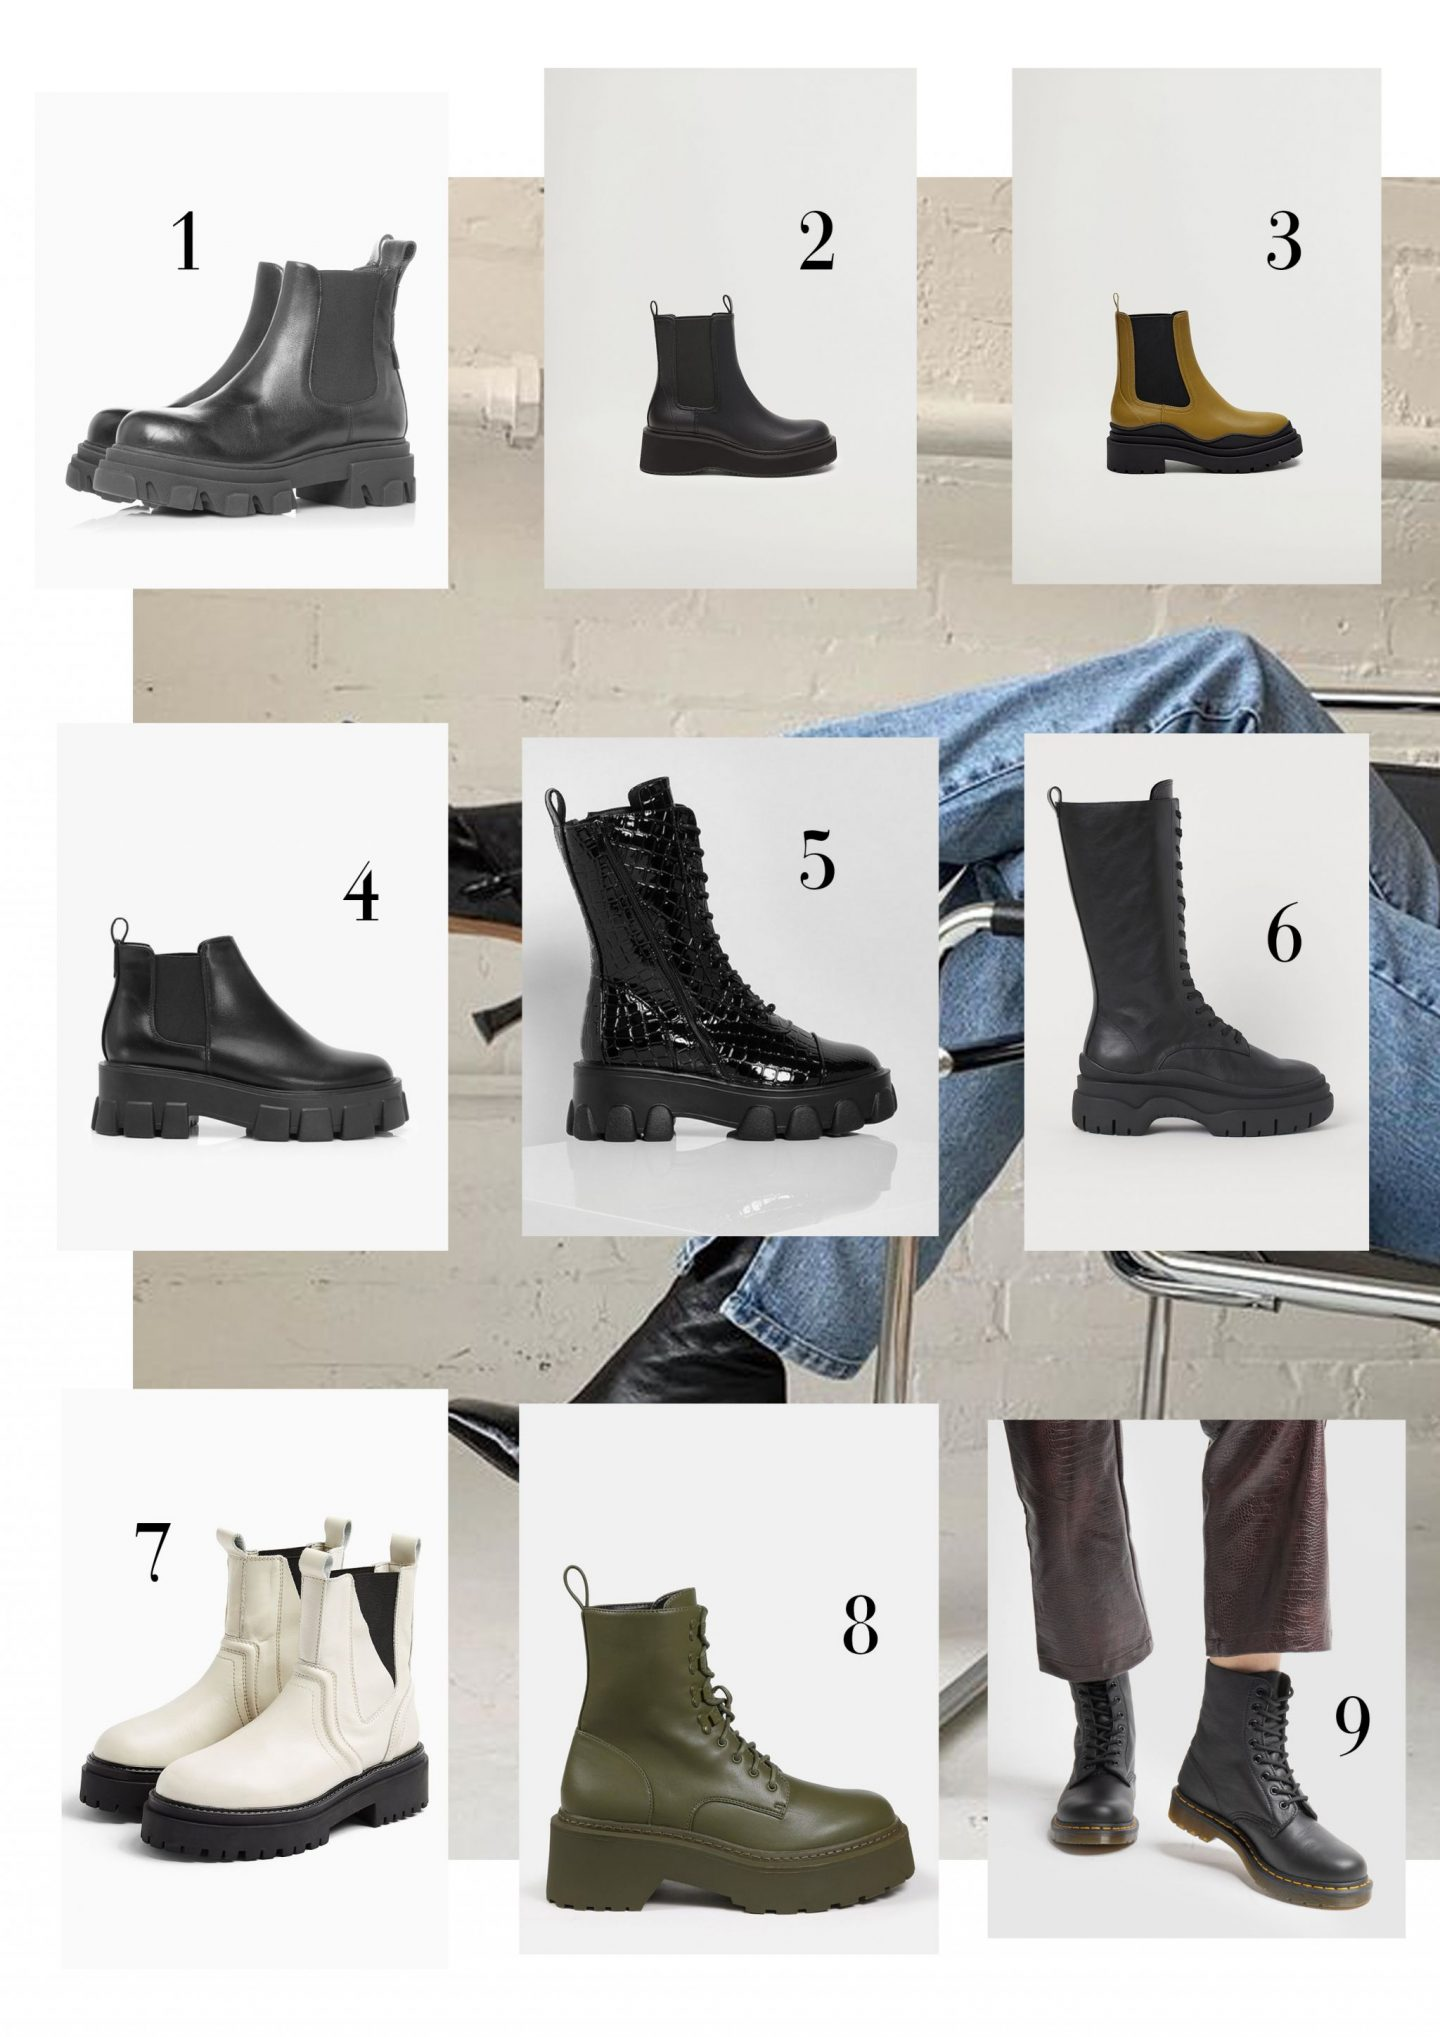 It's chunky boots season baby, and here are the best ones on offer!